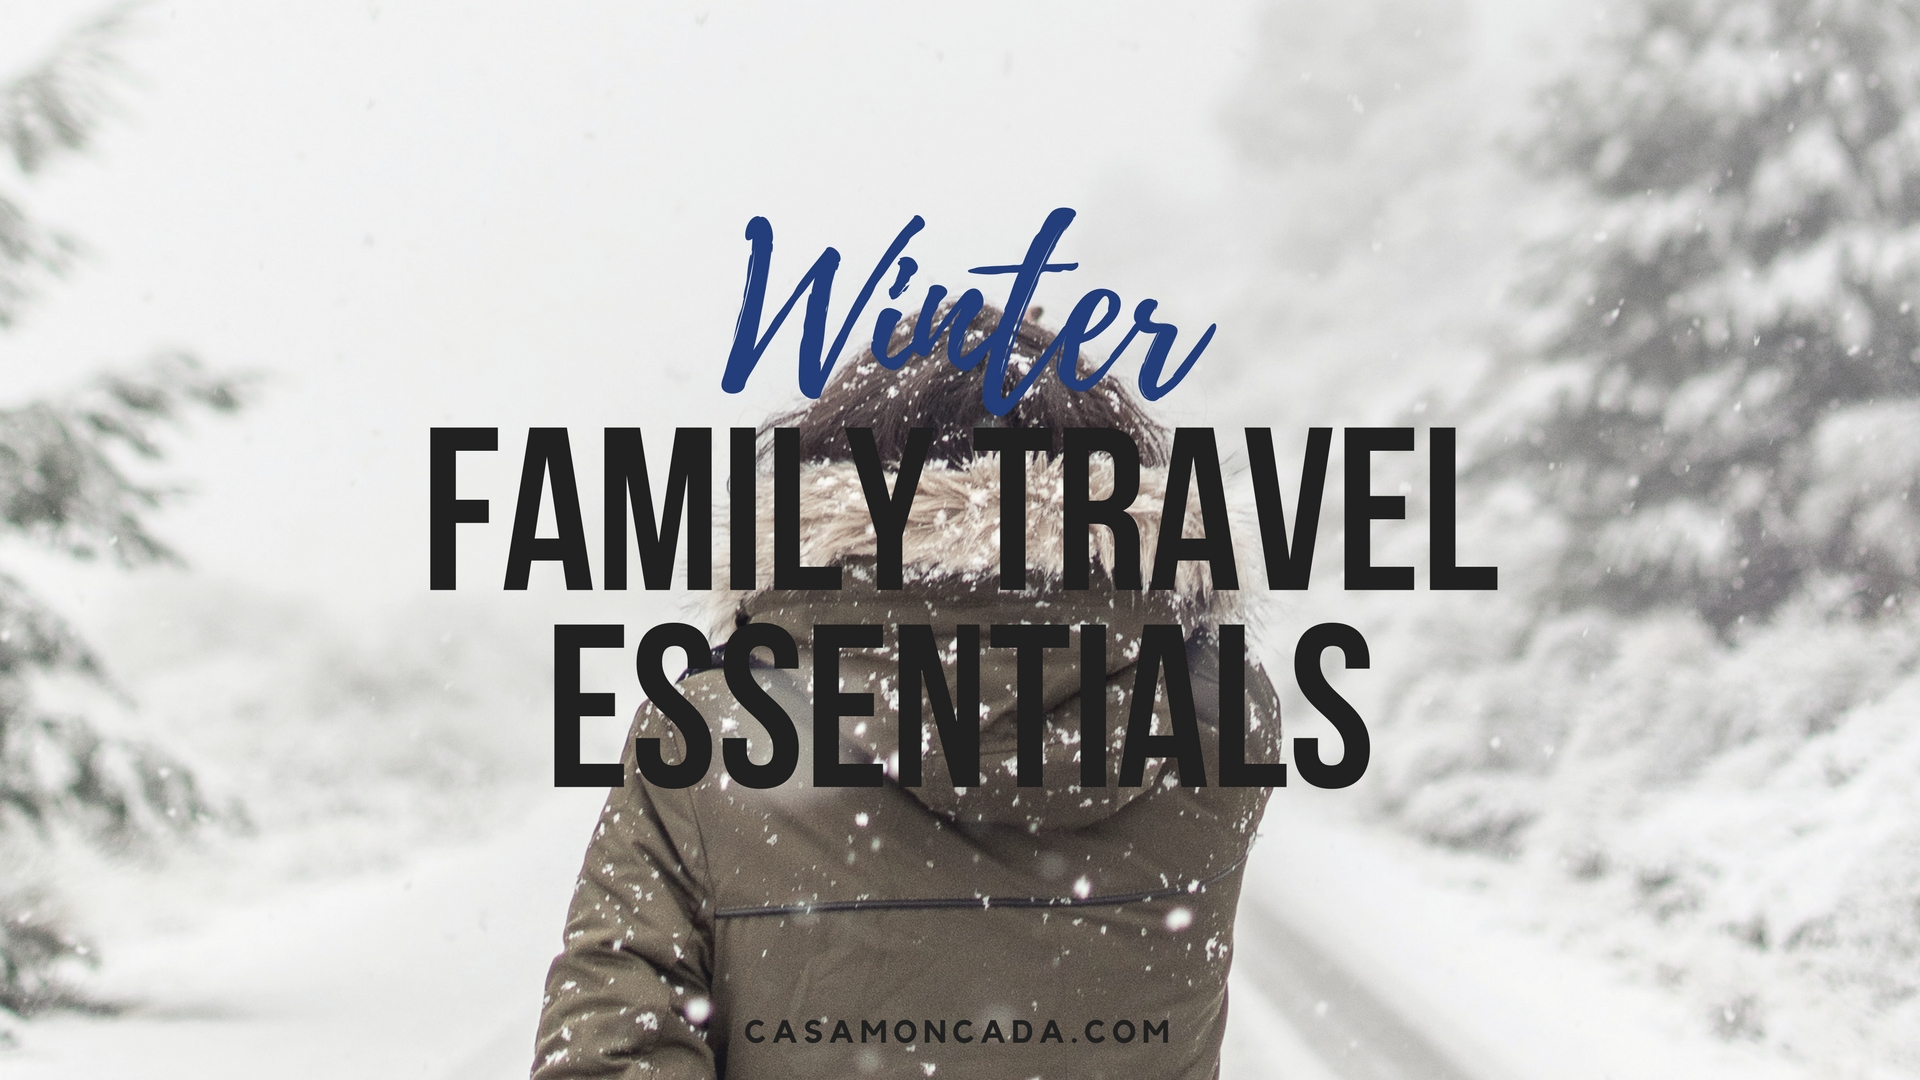 winter family vacation essentials